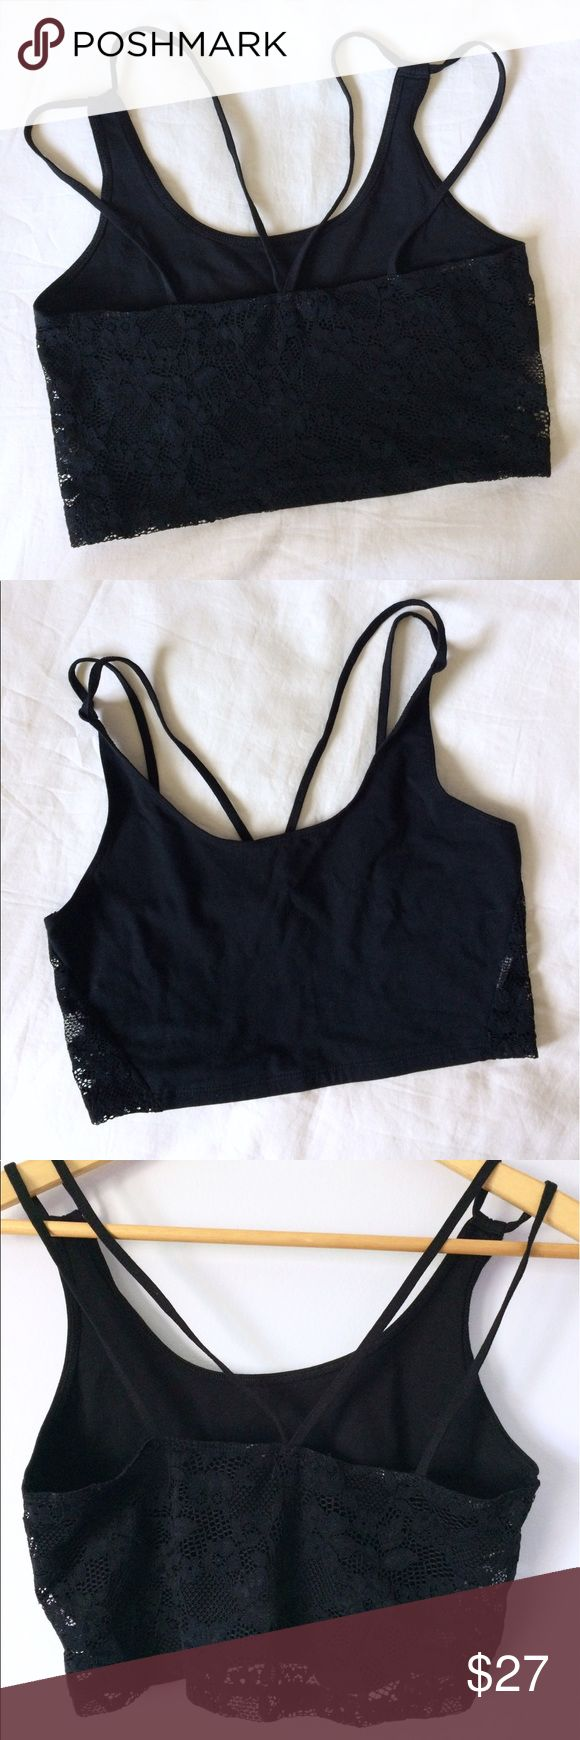 AE crochet lace back bra top Lace back bra top/crop cami from AE. Like new condition! Only worn once for a couple hours, and the inside tag was cut off to get rid of scratchiness, besides that no flaws at all and in perfect condition! Super cute to layer under tanks, I just have no use for it so someone else should have it! American Eagle Outfitters Tops Crop Tops